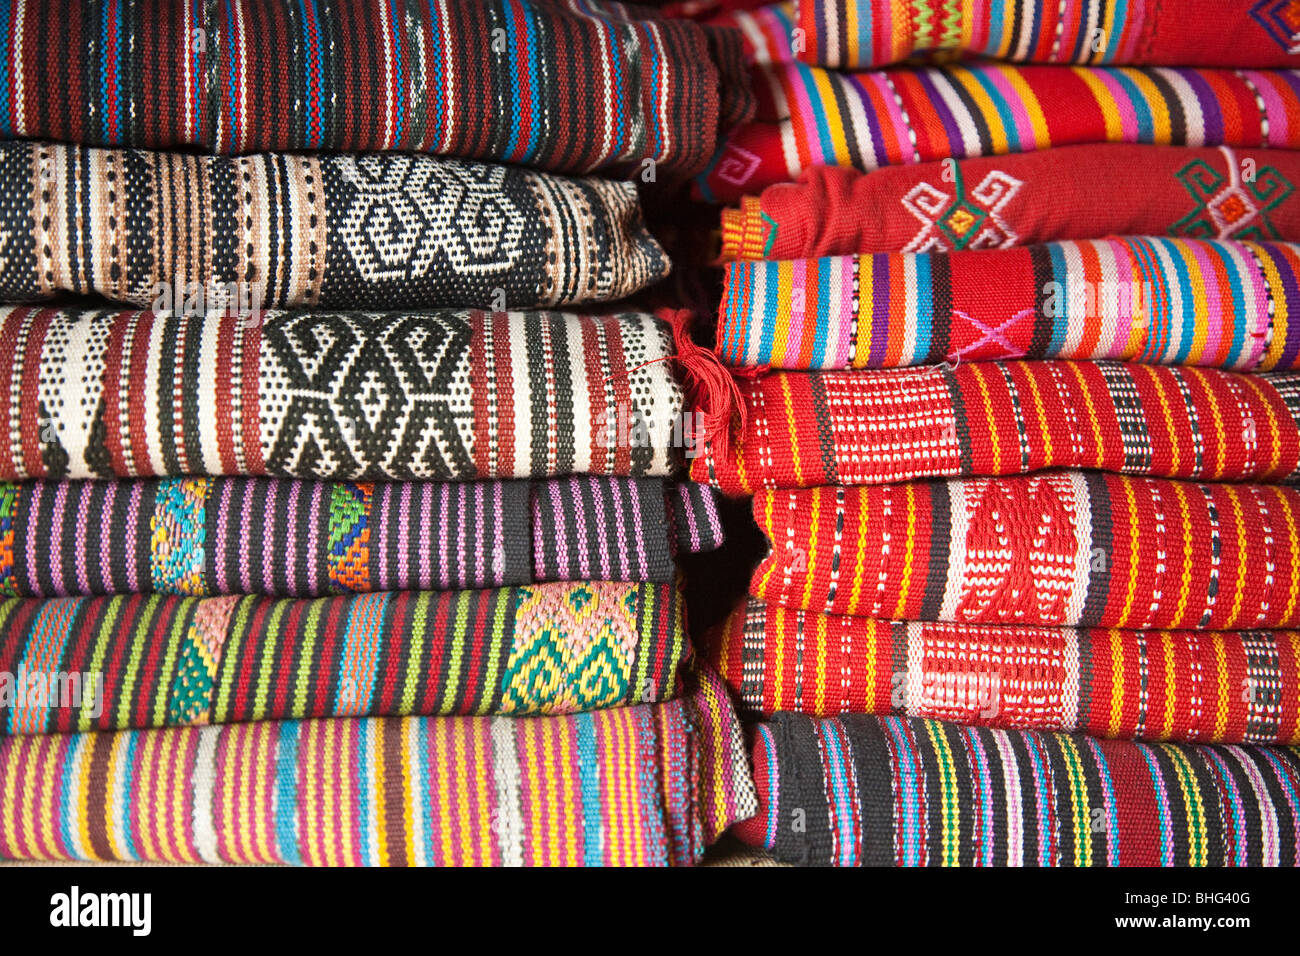 Traditional tais cloth in market in dili east timor - Stock Image